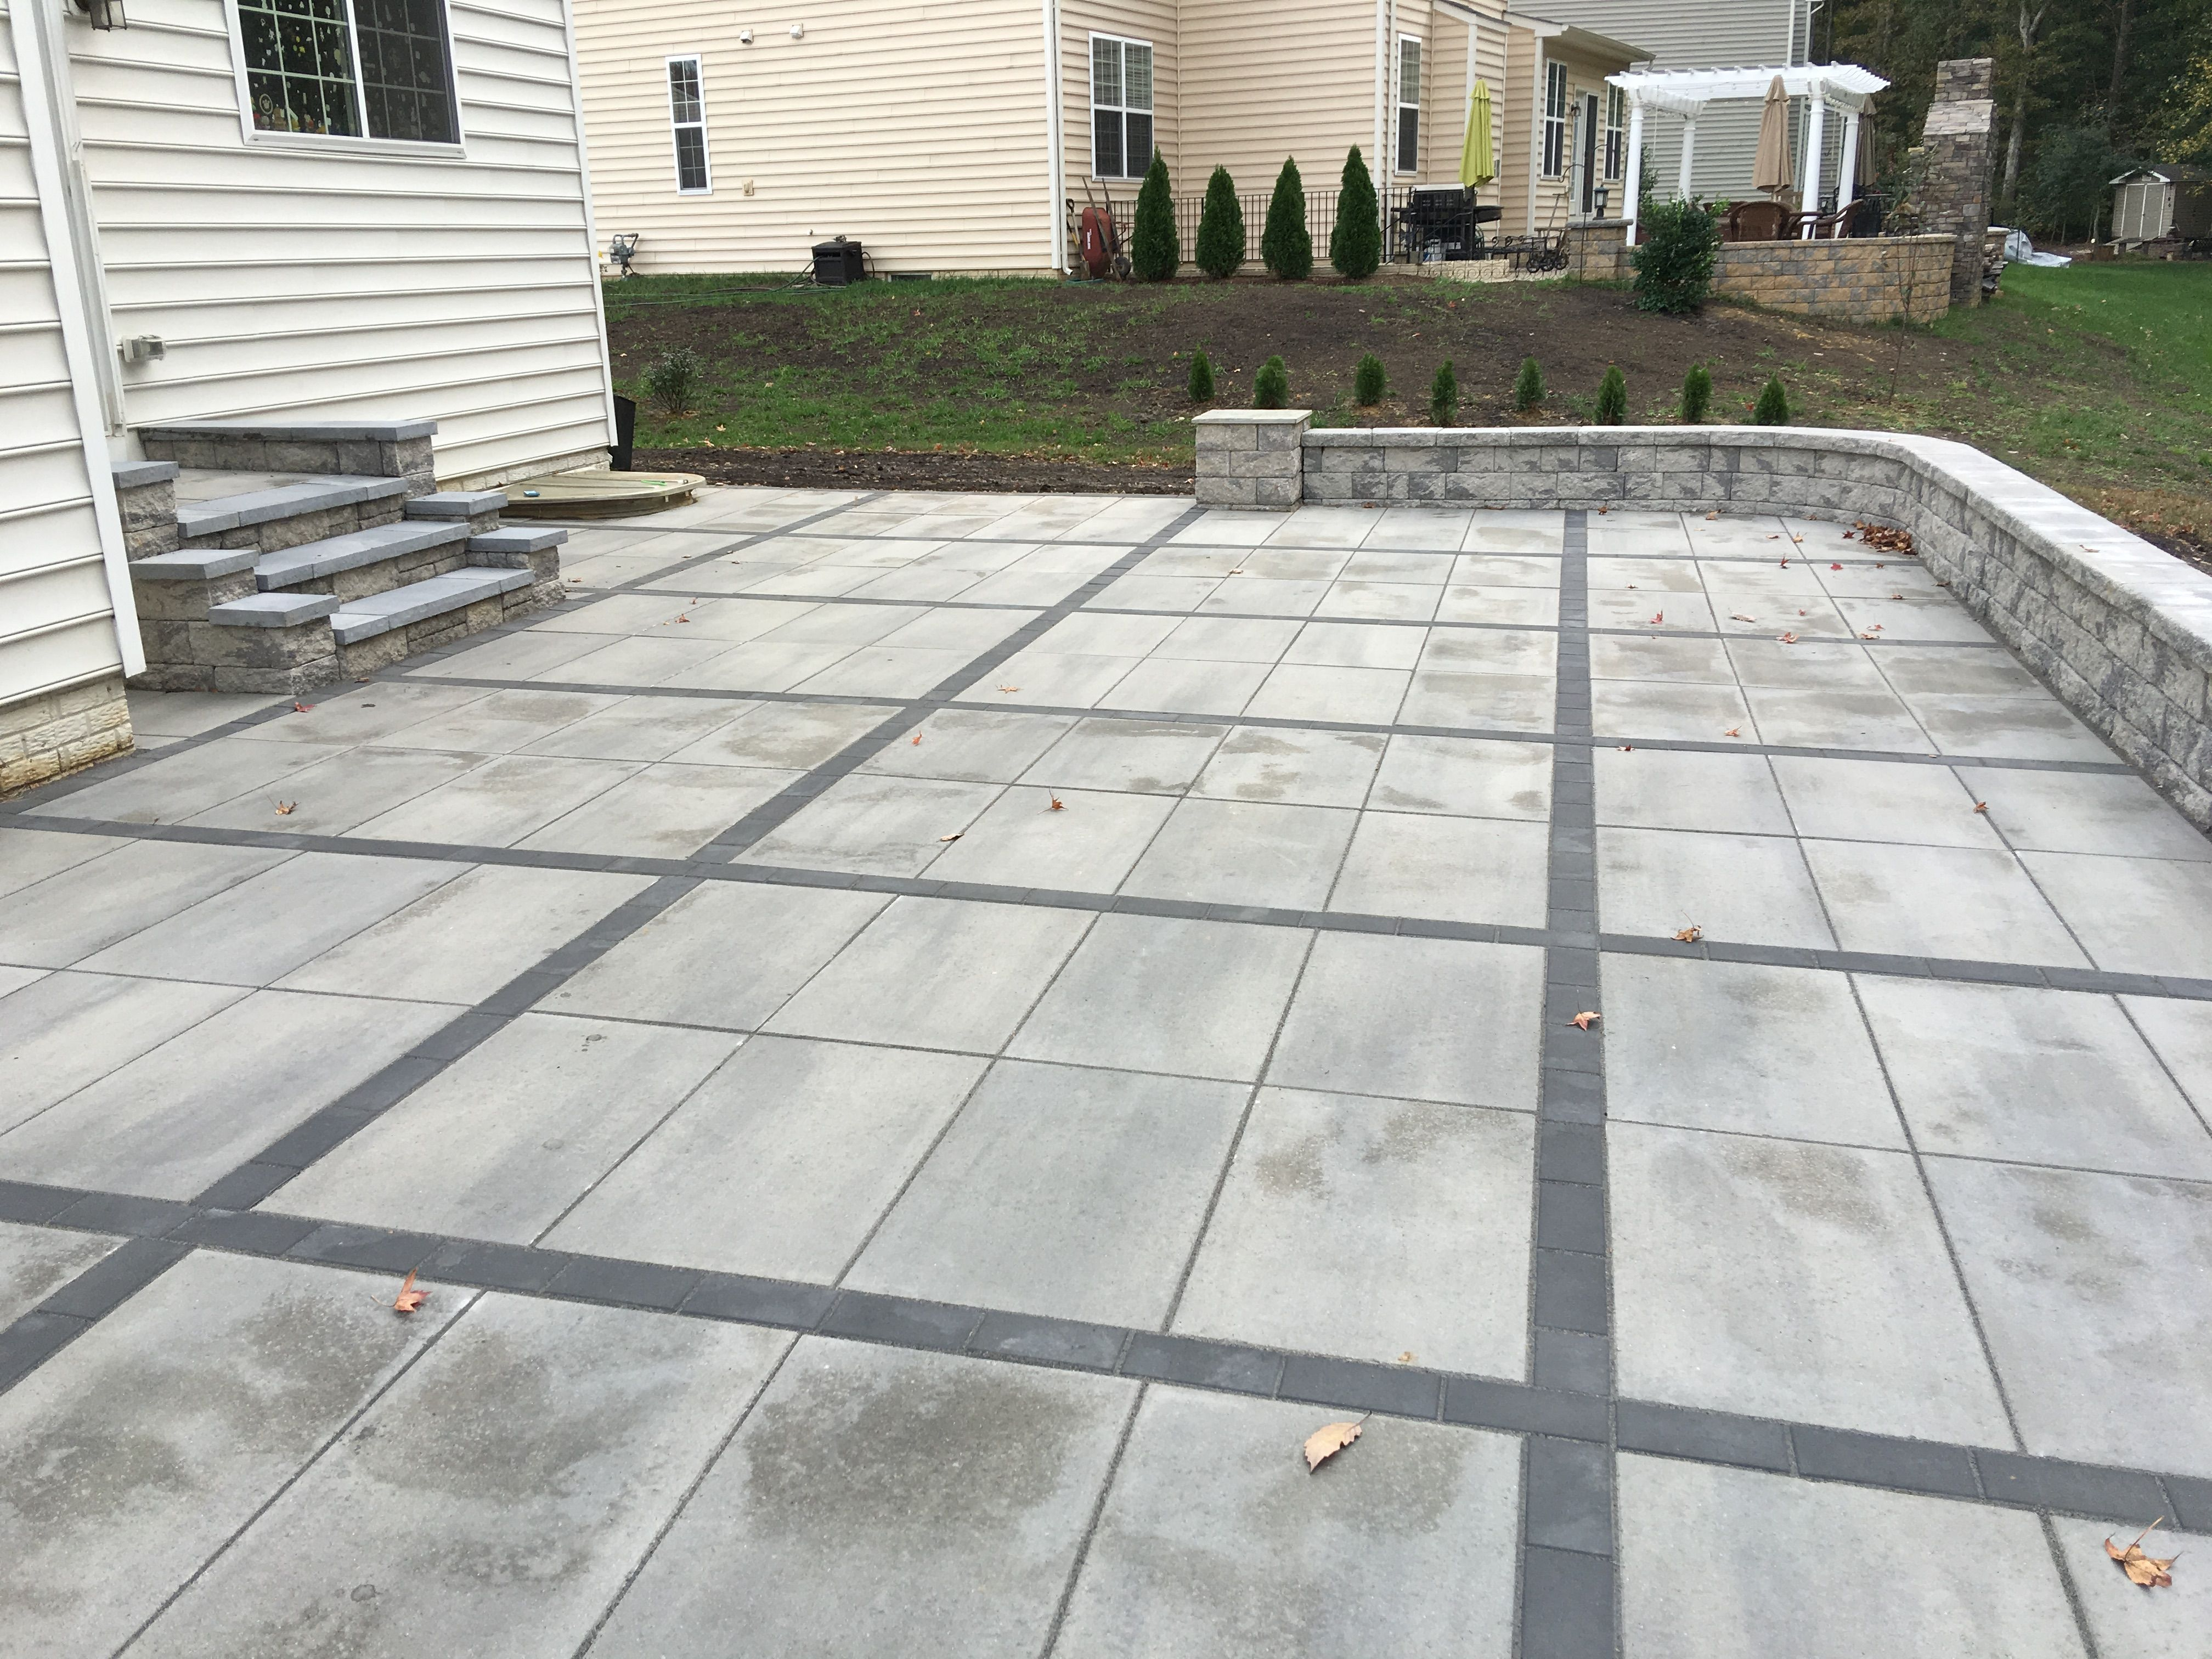 Concrete Patio Pavers Best Of Sets For Trend Home Depot Square Diy Thin Over X Interlocking Paver